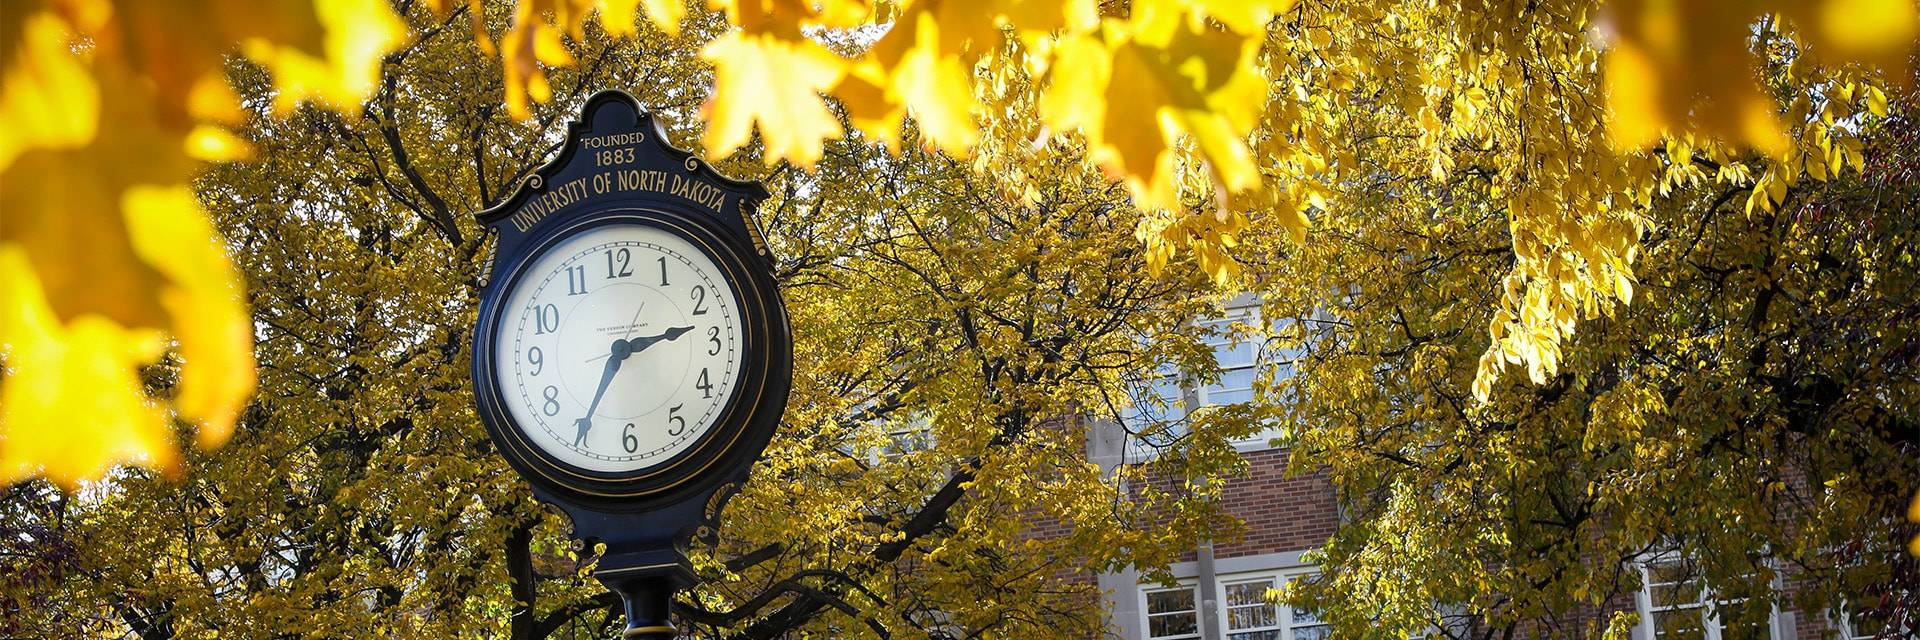 UND clock during fall